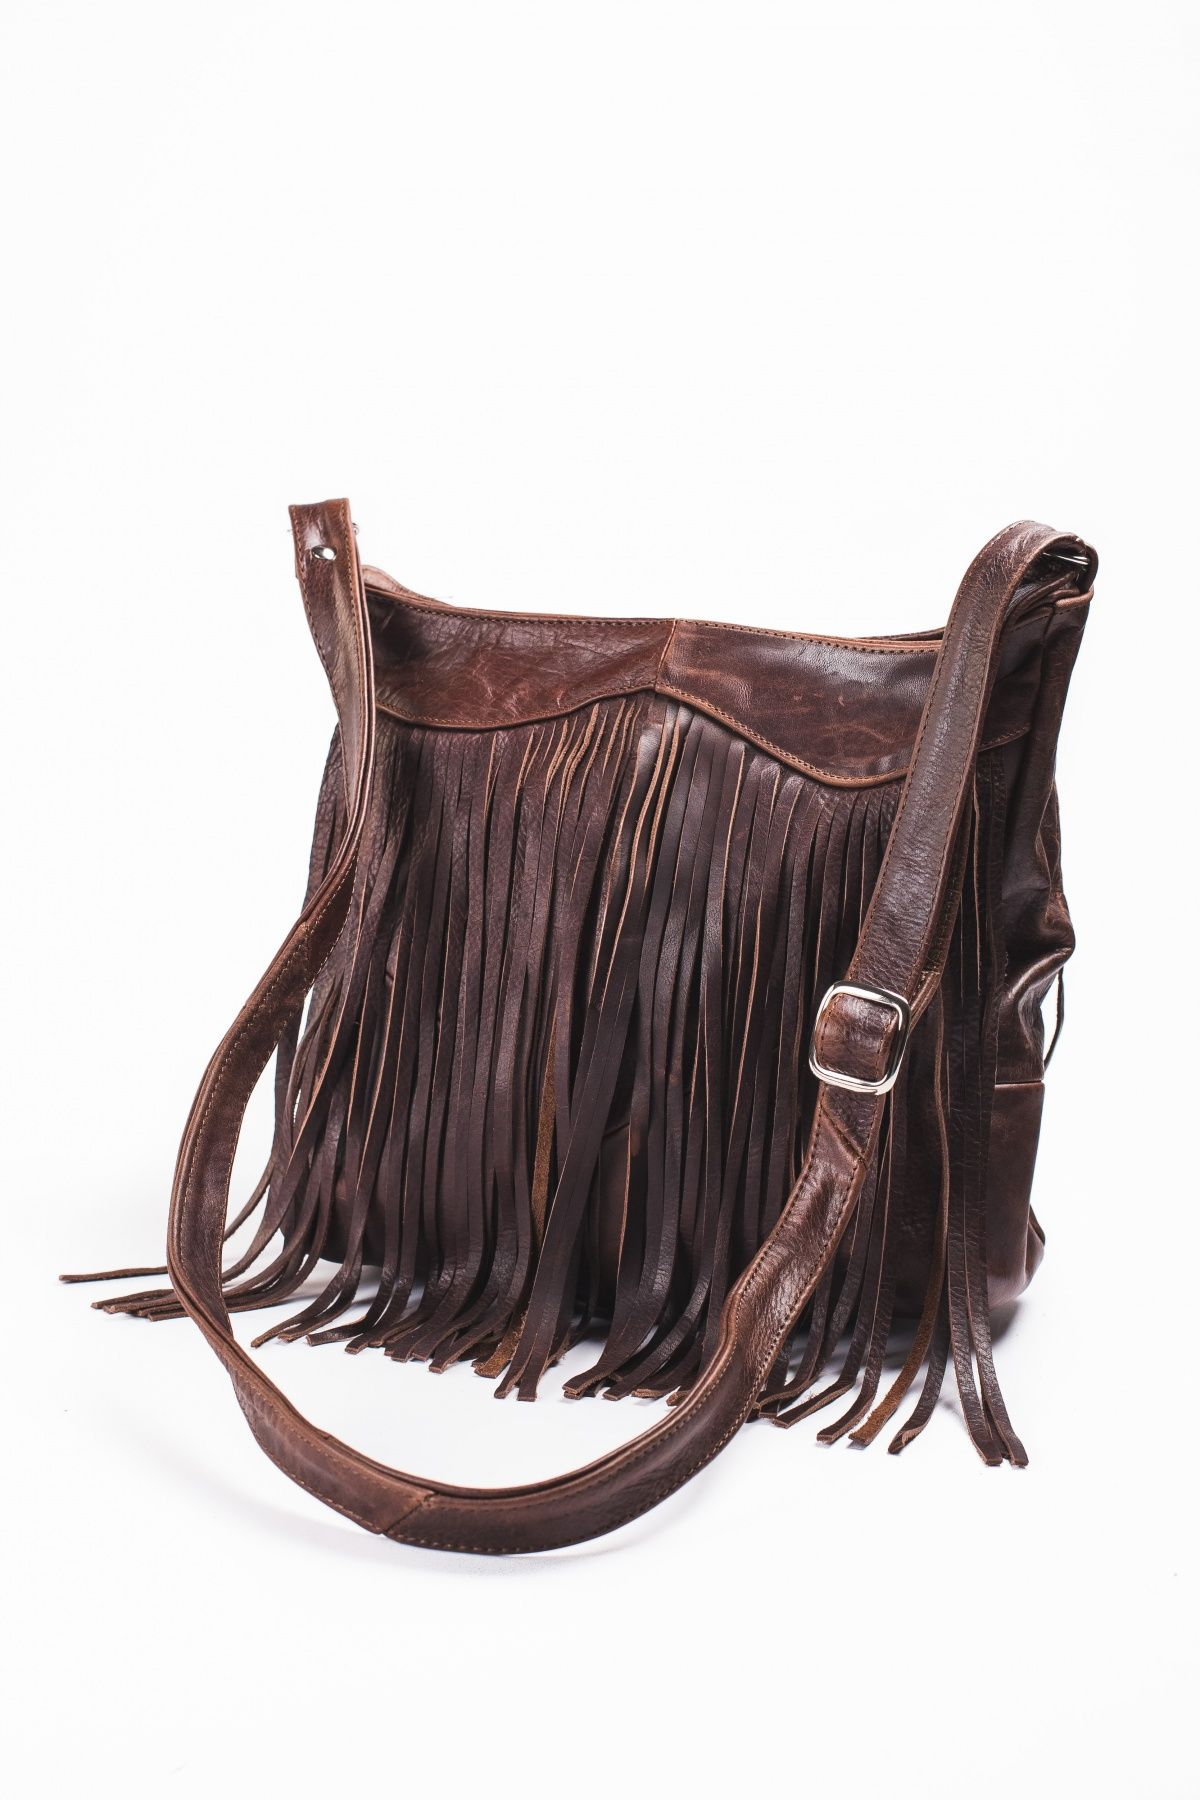 Boho Perfection Leather Purse With Fringe Earthbound Trading Co